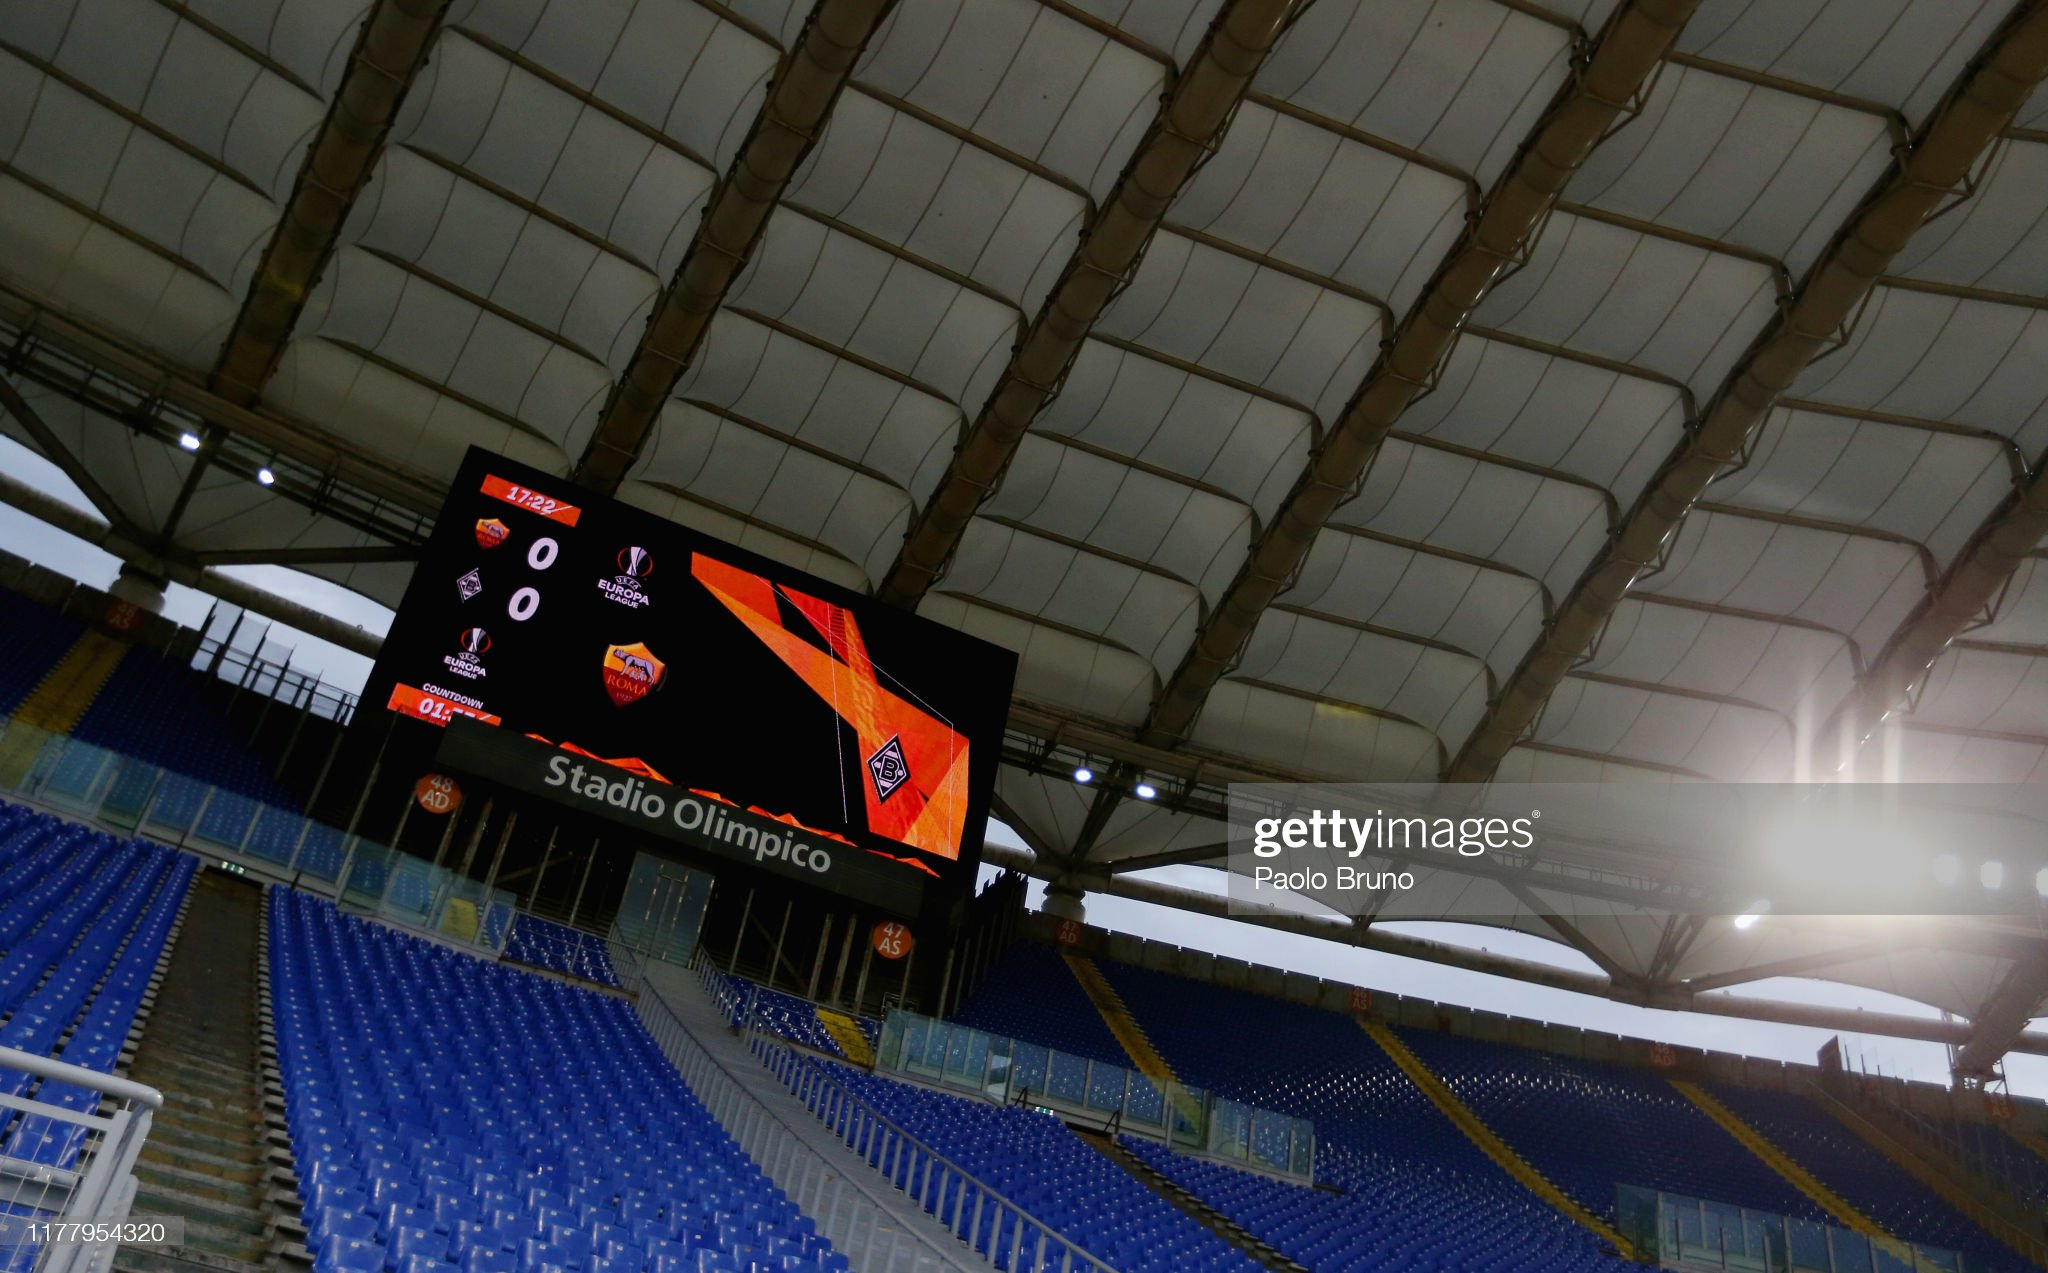 Roma v Lazio preview, prediction and odds